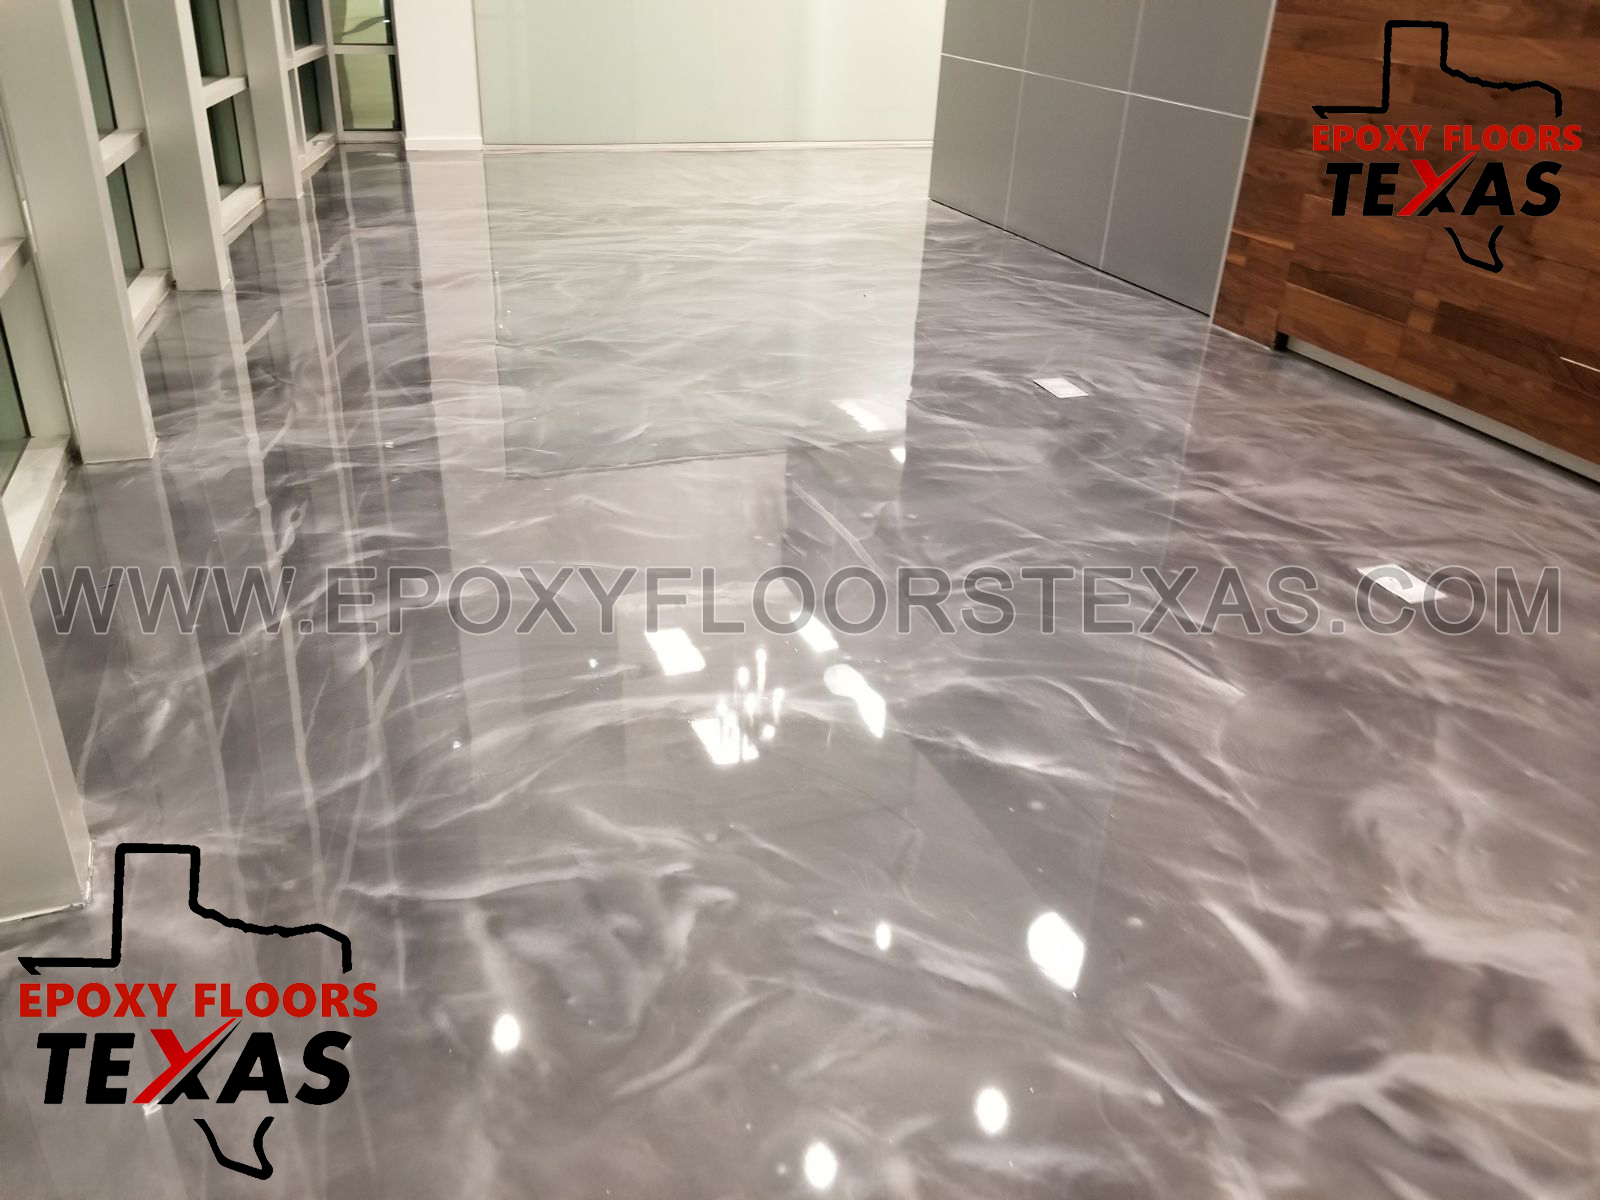 Commercial-Metallic-Epoxy-Floors-Texas (7)